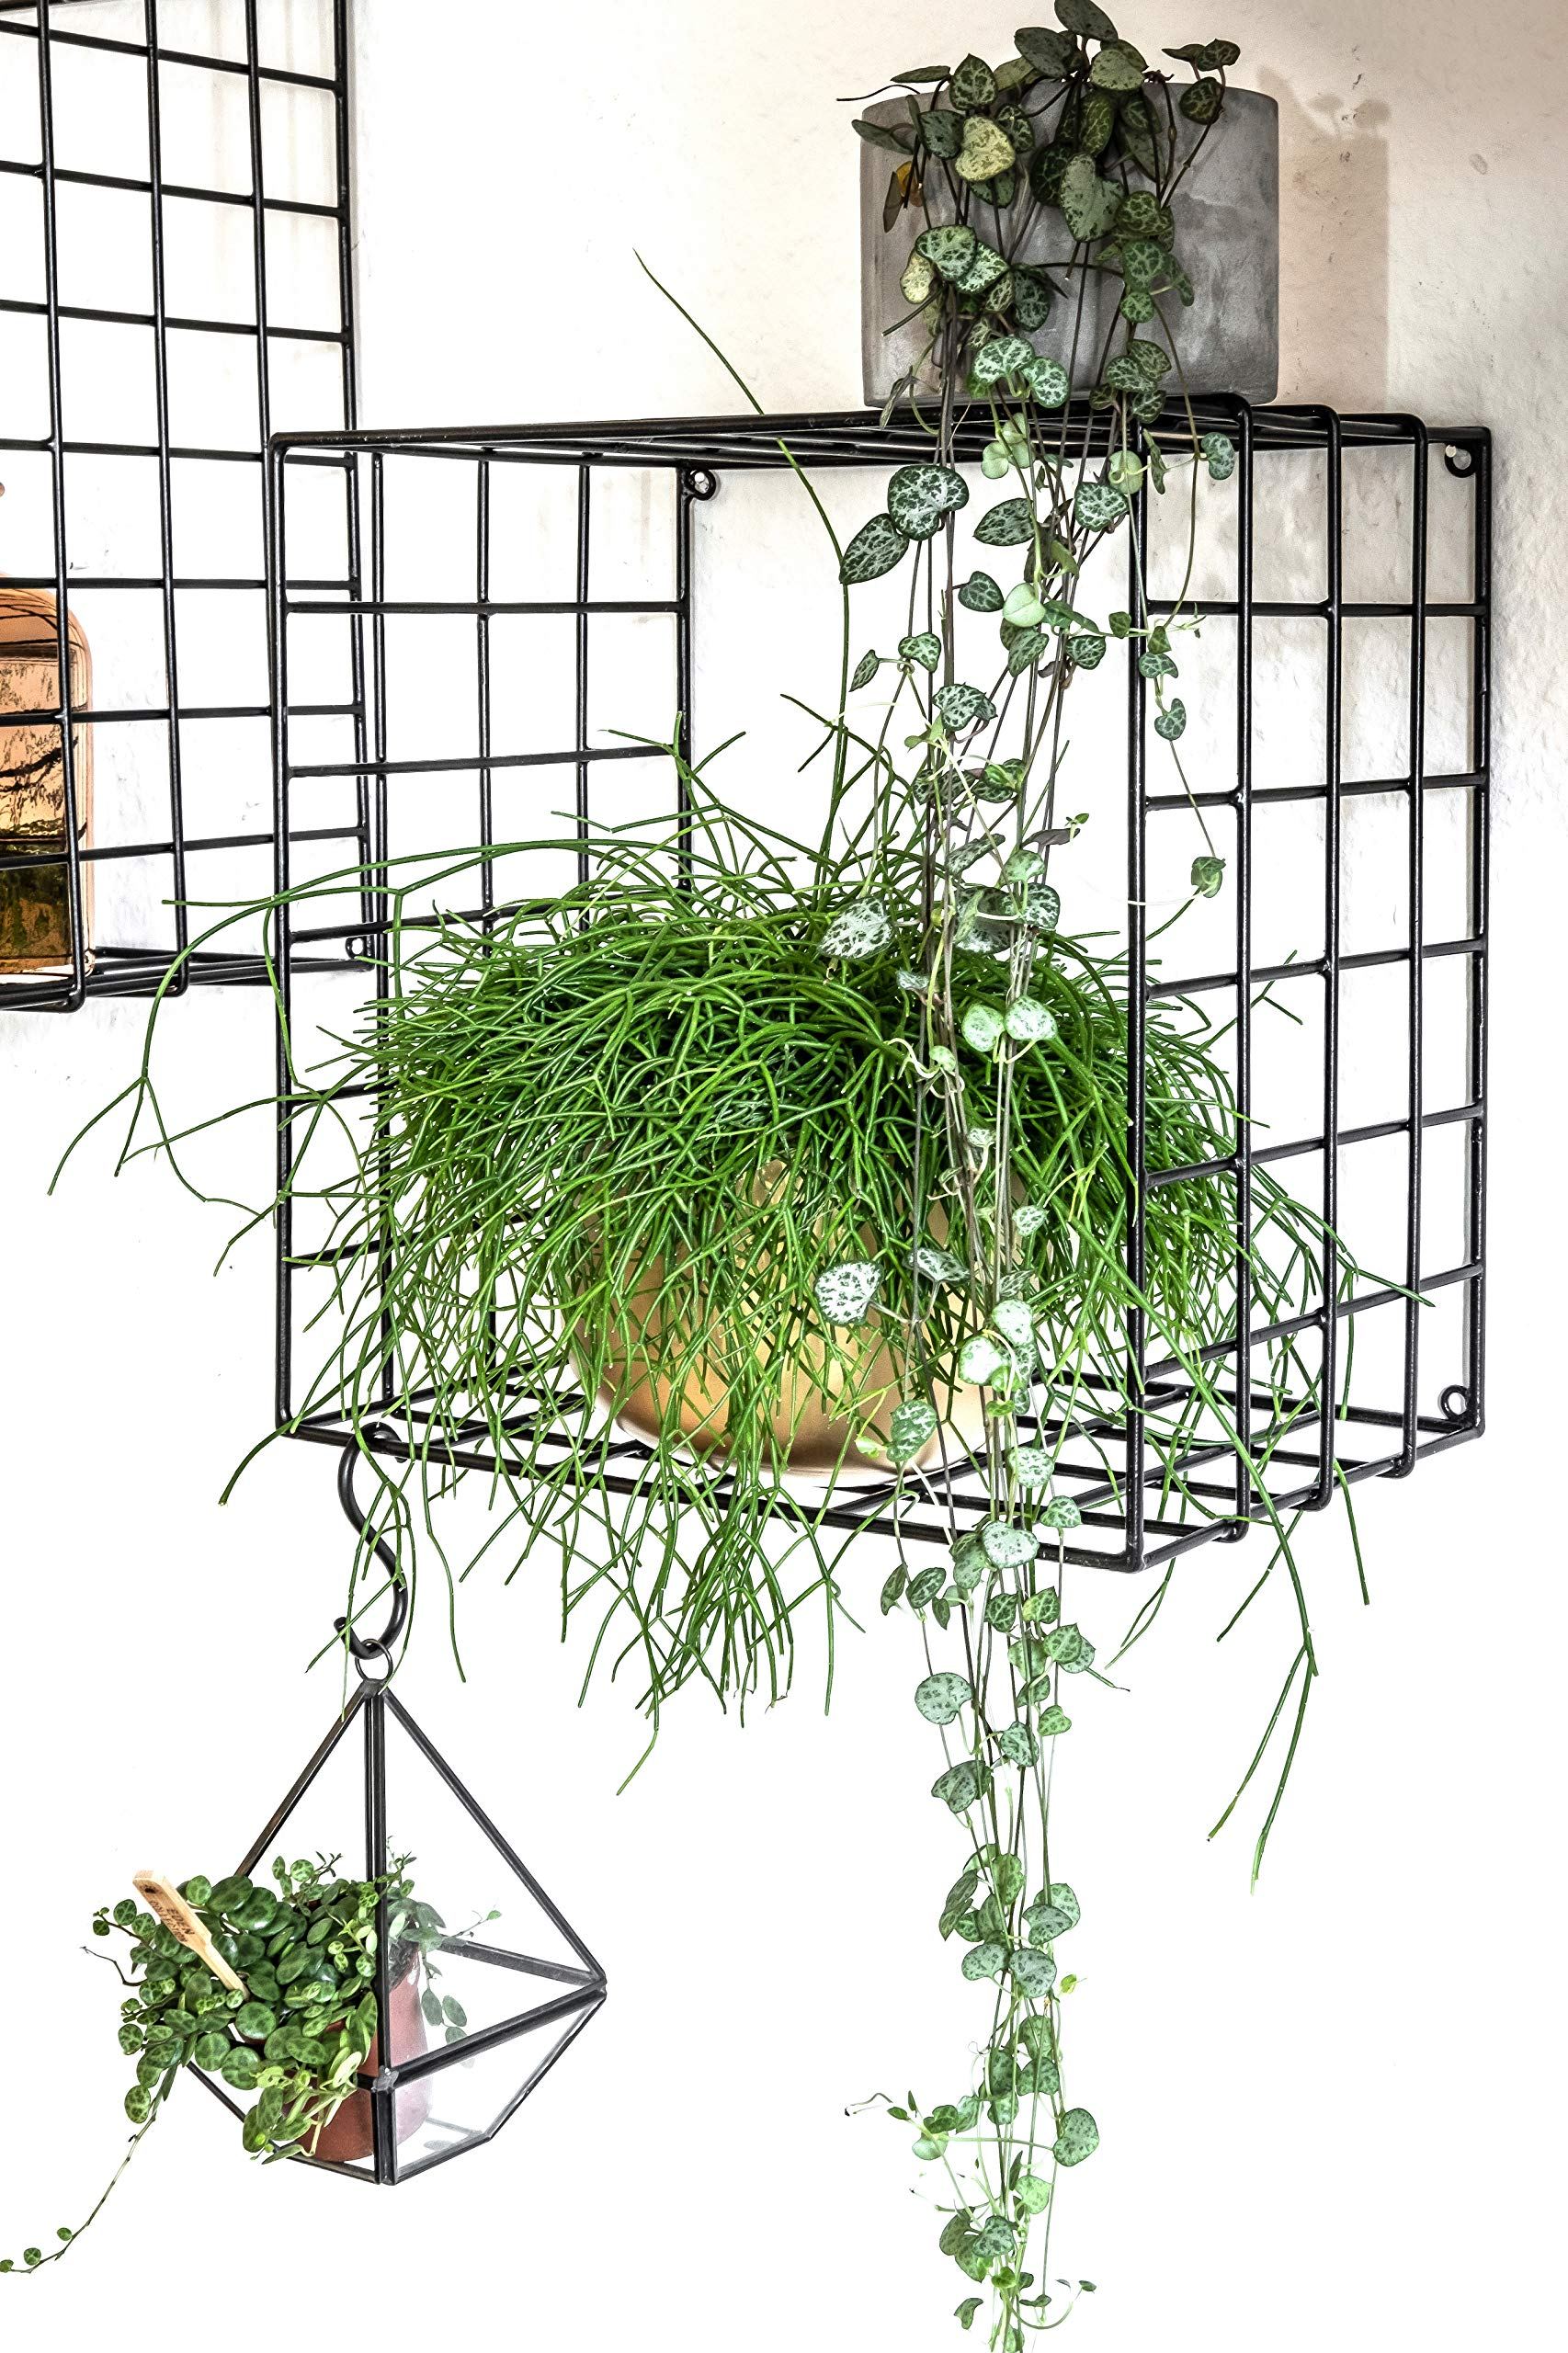 Kimisty Set of 3 Metal Floating Shelves | Decorative Wire Large Square Wall Mounted Shelf | Box Free Floating Mesh Shelves | Industrial Style Deep Black Metal Shelving | 14, 12, 11 Inch Long - FUNCTIONALITY AND STYLE: Kimisty ROOT floating shelf set is perfect way to display your plants, books, glassware and any other kind of shelf decor. Hang them linear or vertical or be playful and use them by hanging cross. No matter how you style them it will be a memorable decoration piece in your home and will collect many compliments. INDUSTRIAL TREND: Industrial interior trend is not leaving us soon. And we love how it adds modern touch to your space so easily and effortlessly. ROOT shelves are deep and large unlike other models out there. Dimensions are : Large: 14 x 14 X 7.5 inch Medium: 12.5 x 12.5 X 7.5 inch Small: 11 x 11 X 7.5 inch HIGH QUALITY MATERIALS AND CRAFTMANSHIP: Material quality means everything to us. We use heavy gauge iron with black powder coating. - wall-shelves, living-room-furniture, living-room - 91WnRqD%2Bn8L -